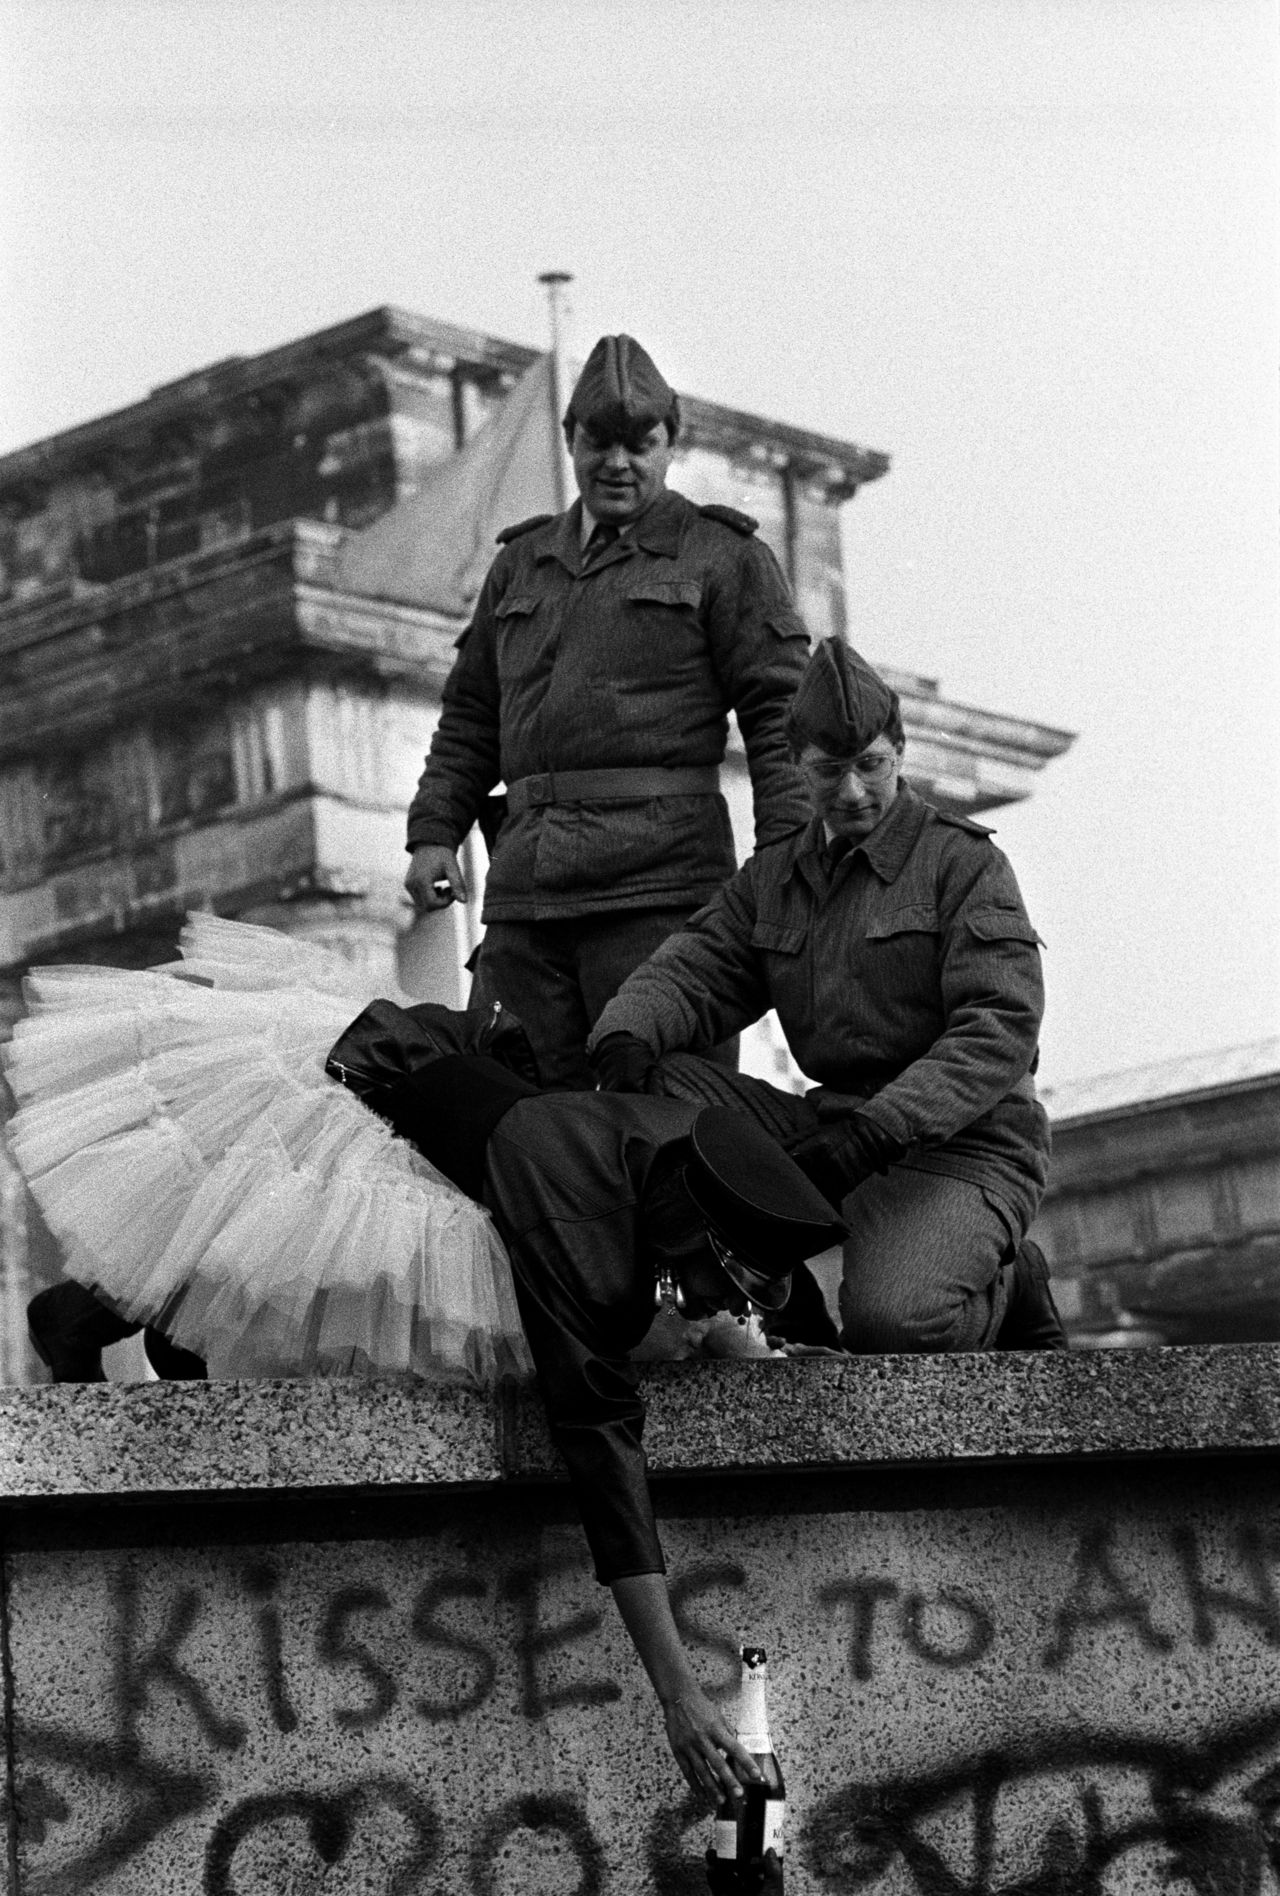 remembering the berlin wall concrete walls police officer and stanley greene the fall of the berlin wall 1989 that was an amazing